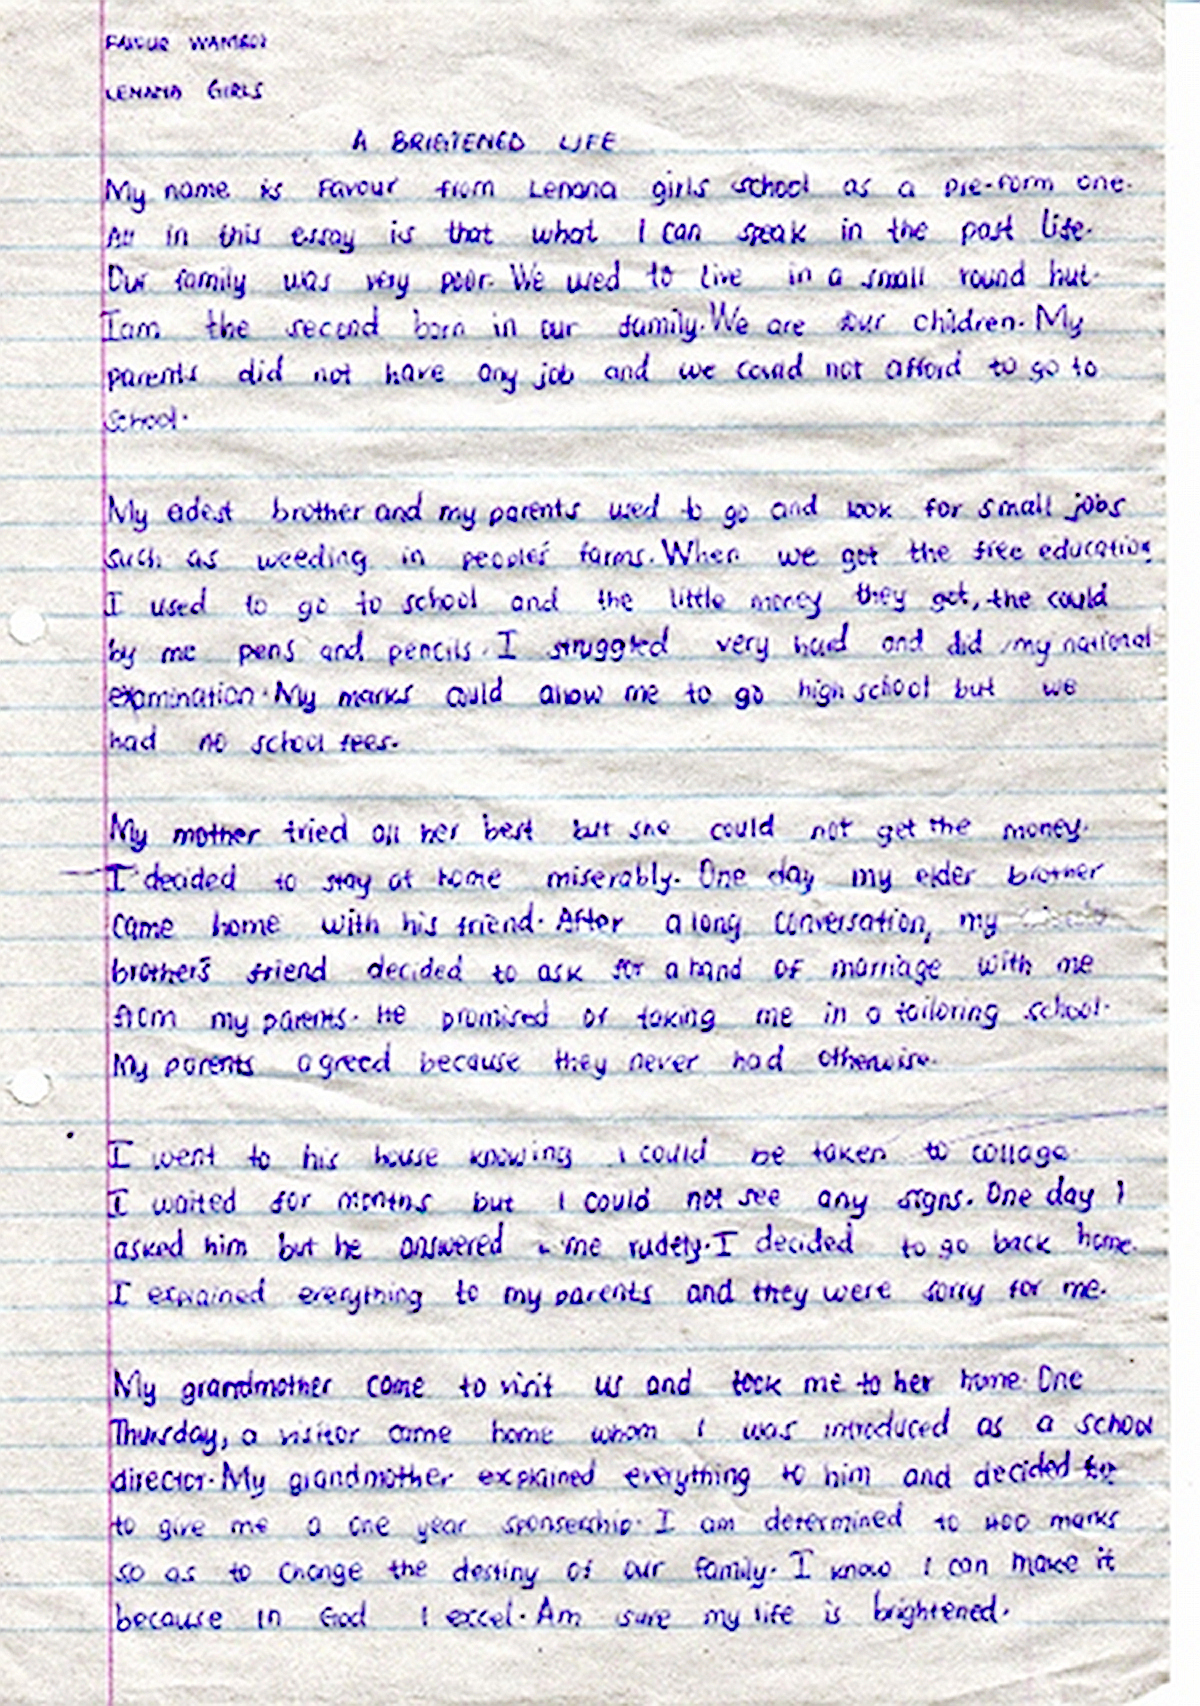 013 Purpose Of Life Essay Example Brightened By Favour Wamboi My In L Wondrous Conclusion How To Have A Driven Can I Full